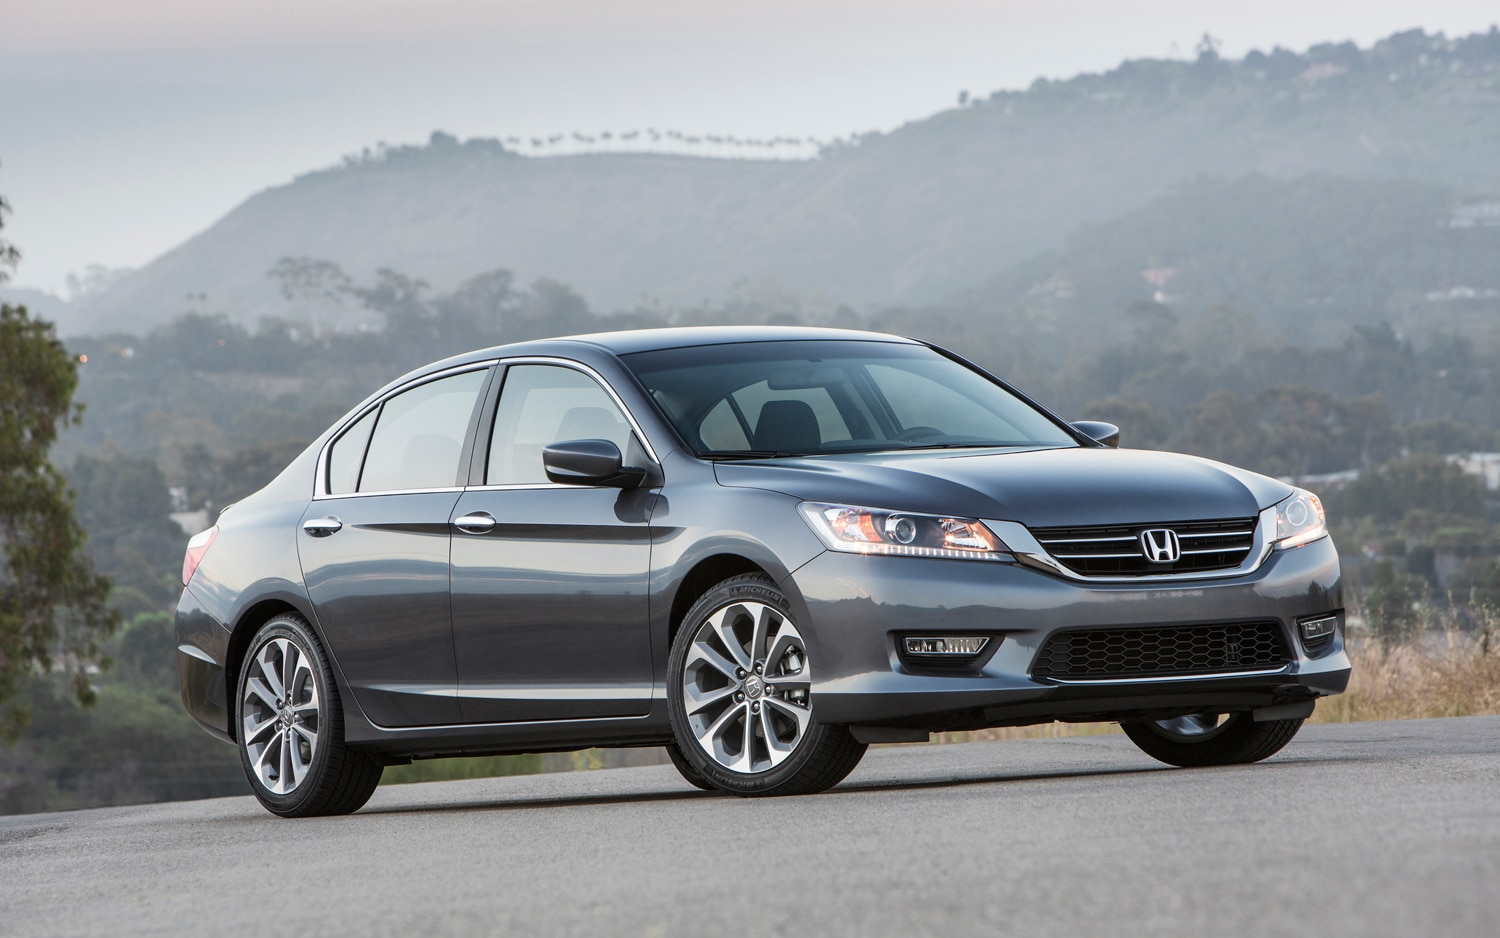 2013 Honda Accord Sport Sedan front three quarters priced 2013 honda accord starts at $22,470, accord v 6 at $30,860 2014 Honda Accord Wiring Diagram at bakdesigns.co